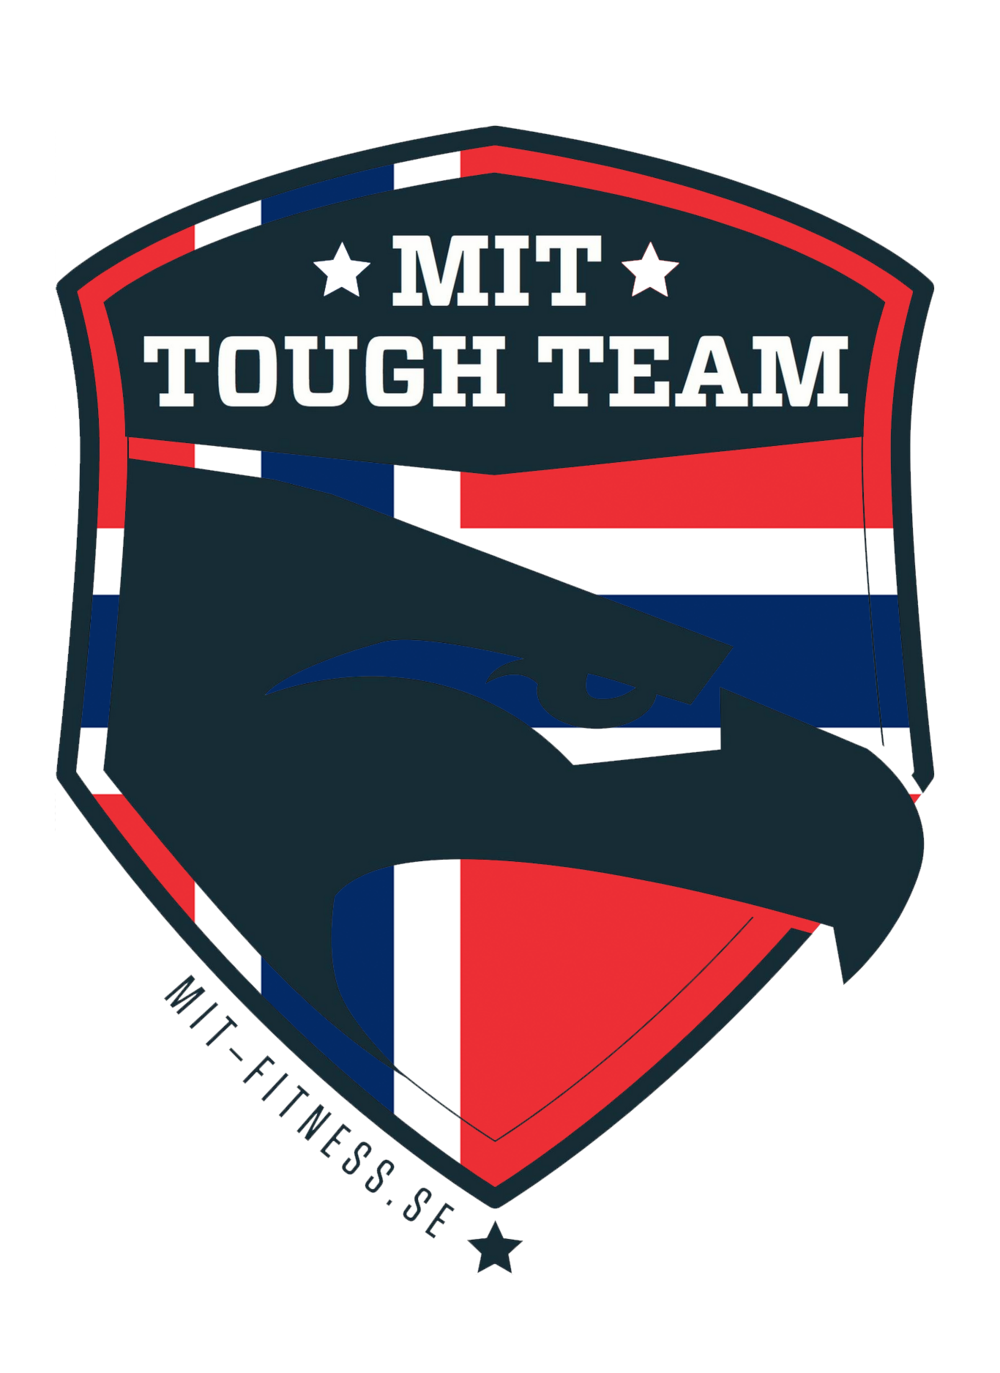 Join MIT NORWAY